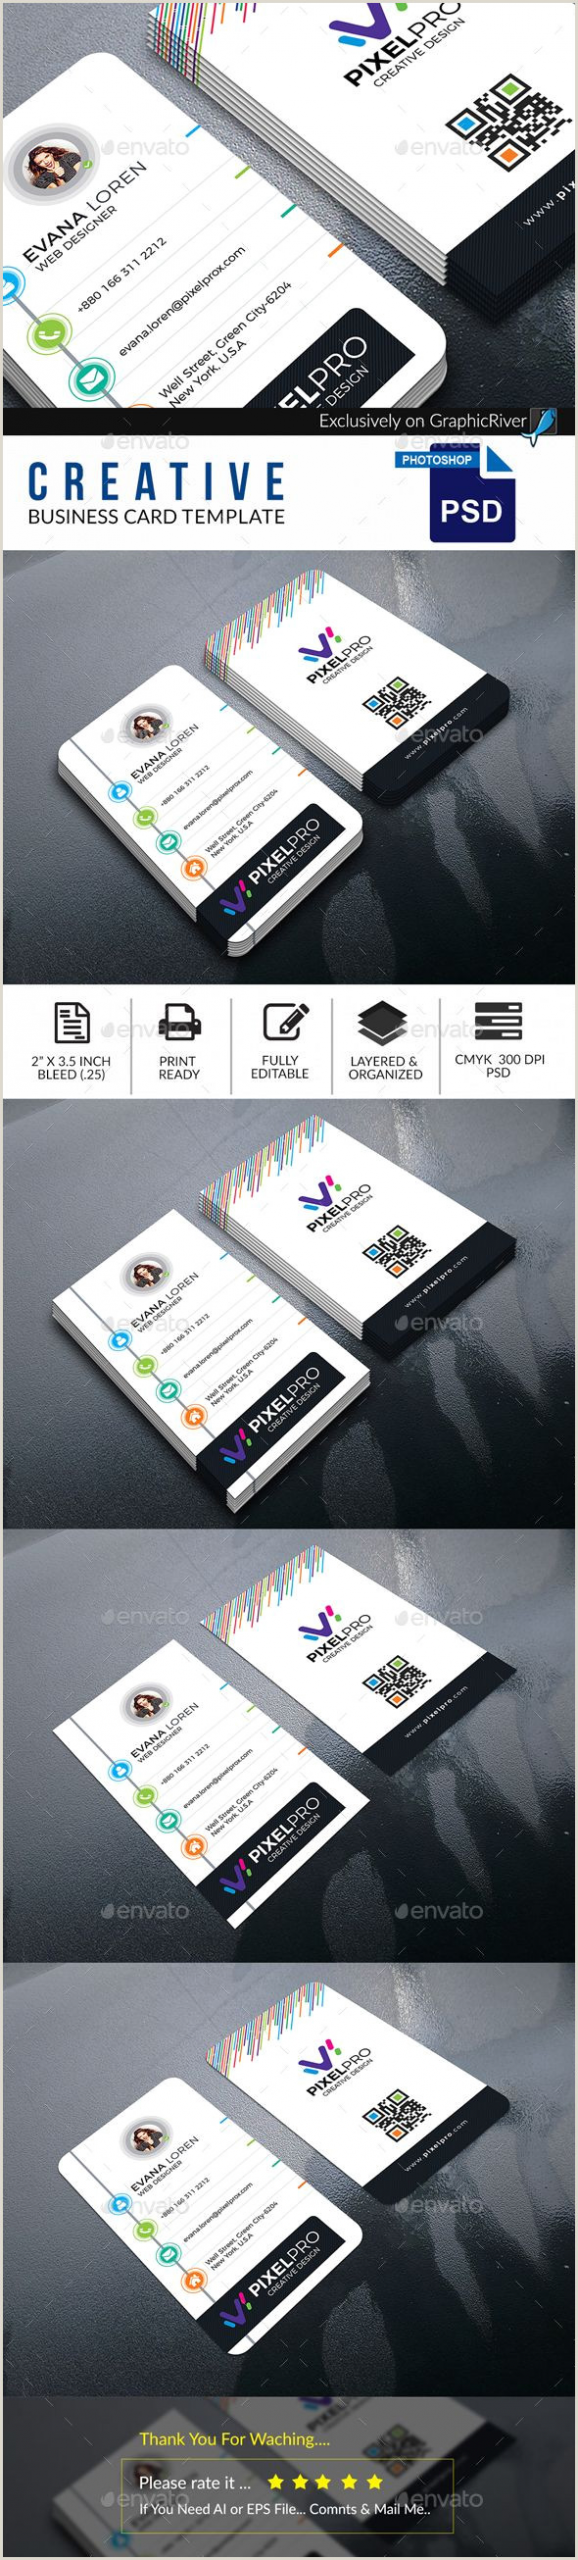 Design Unique Business Cards Online Business Card Template Simple Creative • Download Here